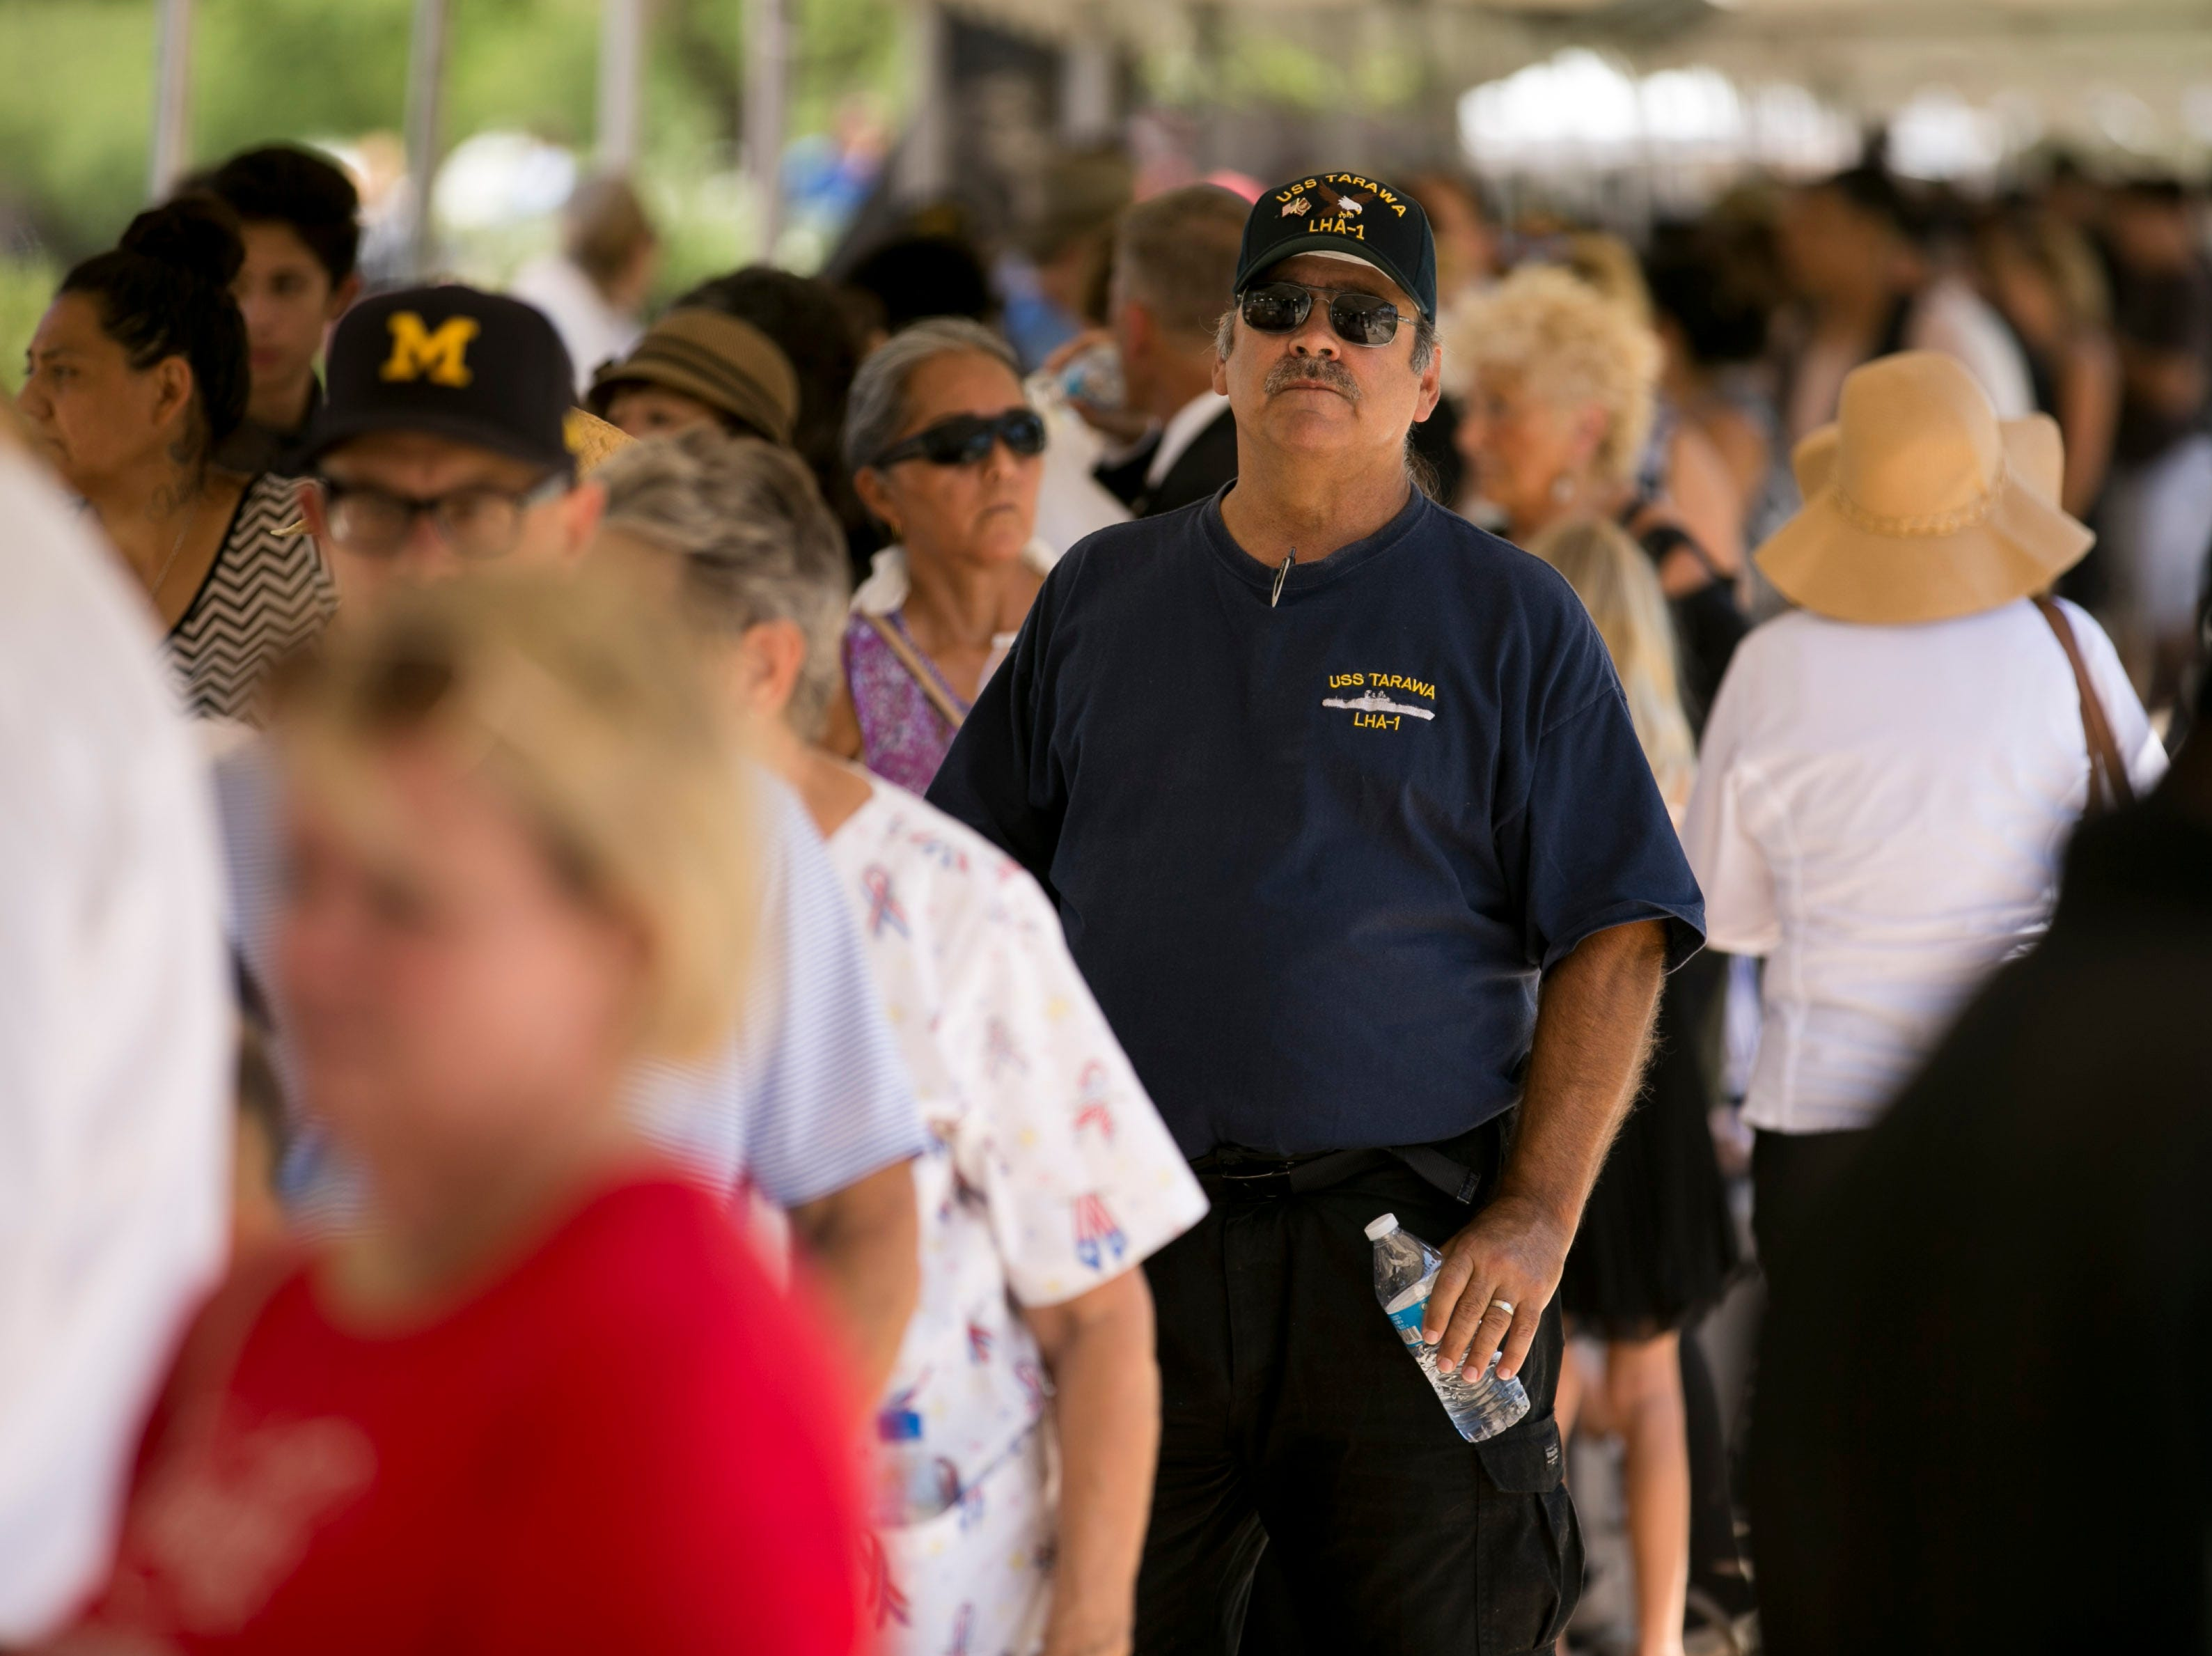 Larry Osborn, (center) of Phoenix and a veteran of the U.S. Navy, people wait in line to enter the Arizona state capitol during a public viewing as Senator John McCain lies in state in the state capitol in Phoenix on Wednesday, August 29, 2018.